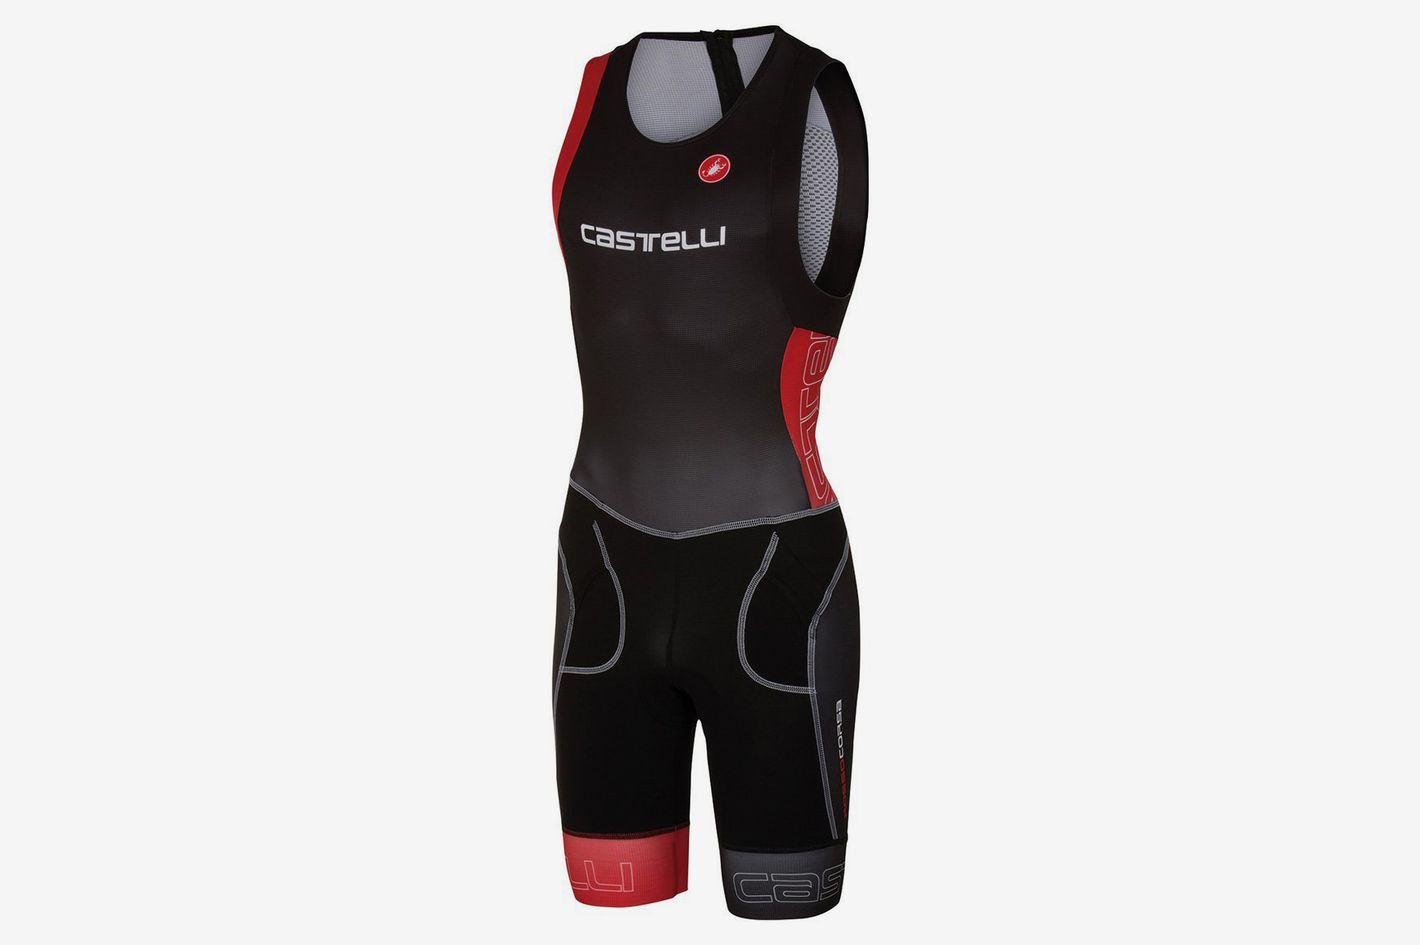 The 24 Best Triathlon Gear Pieces 2018 1419c3fd4